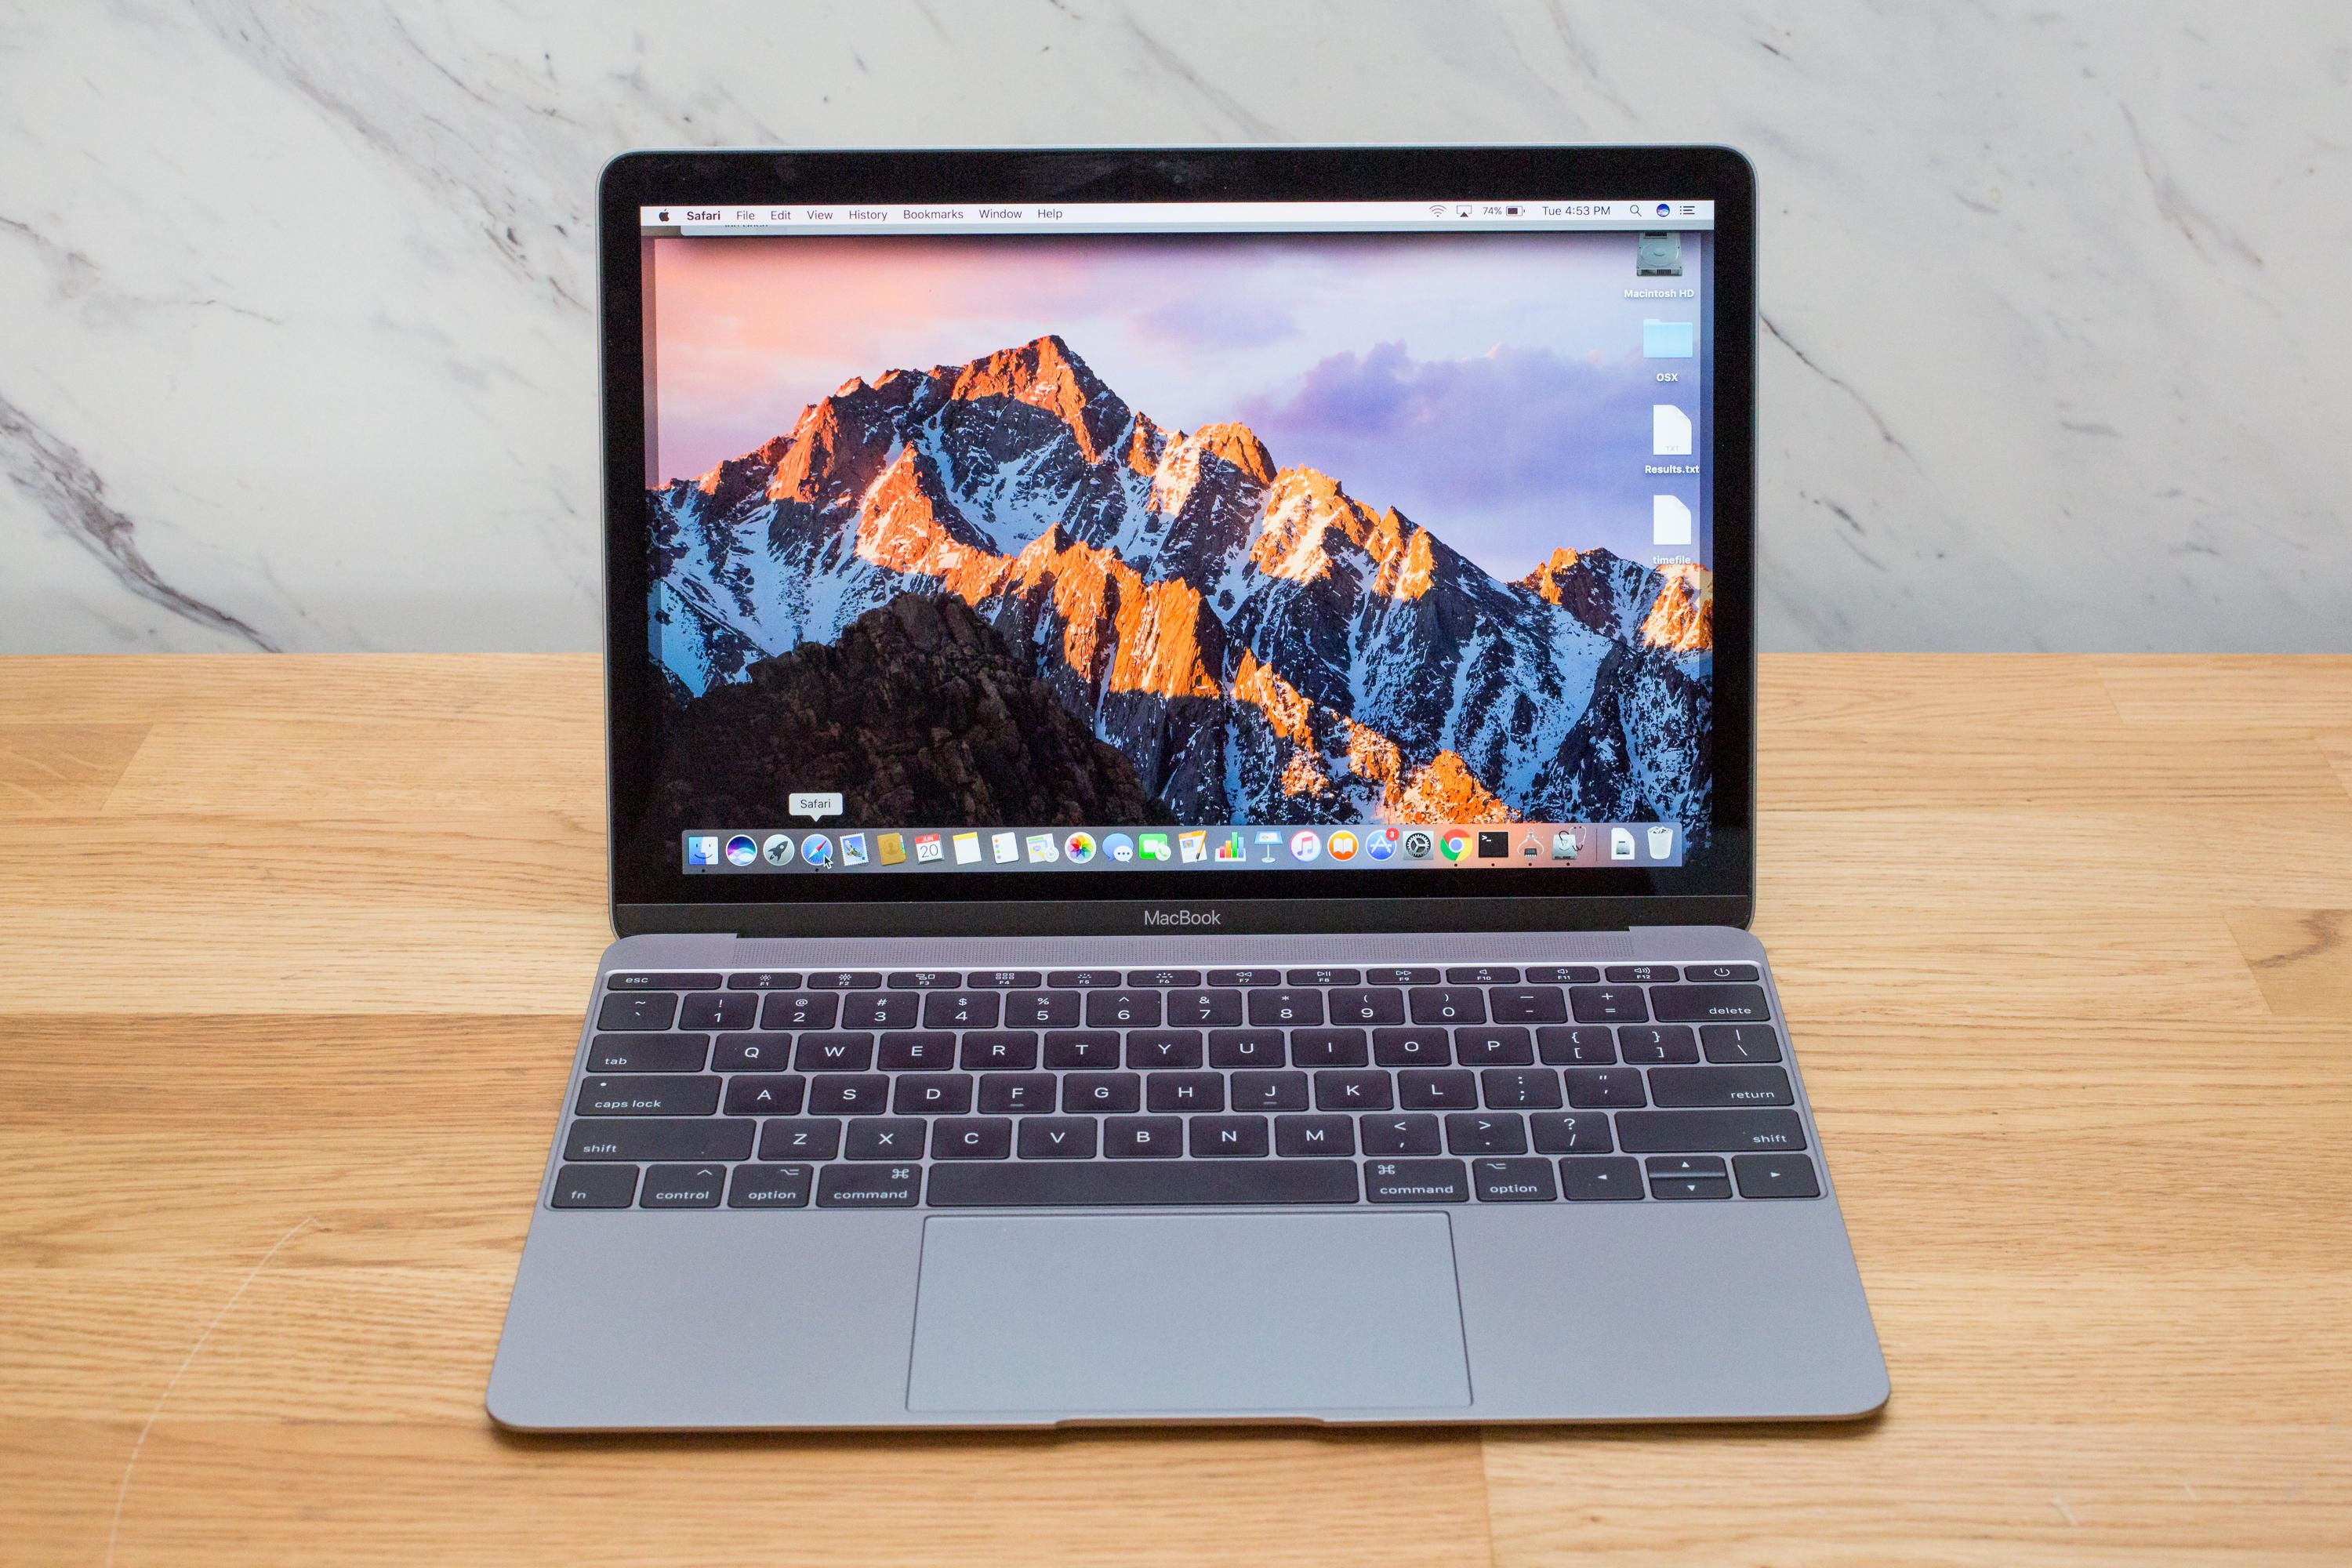 All that is known about MacBook 2018